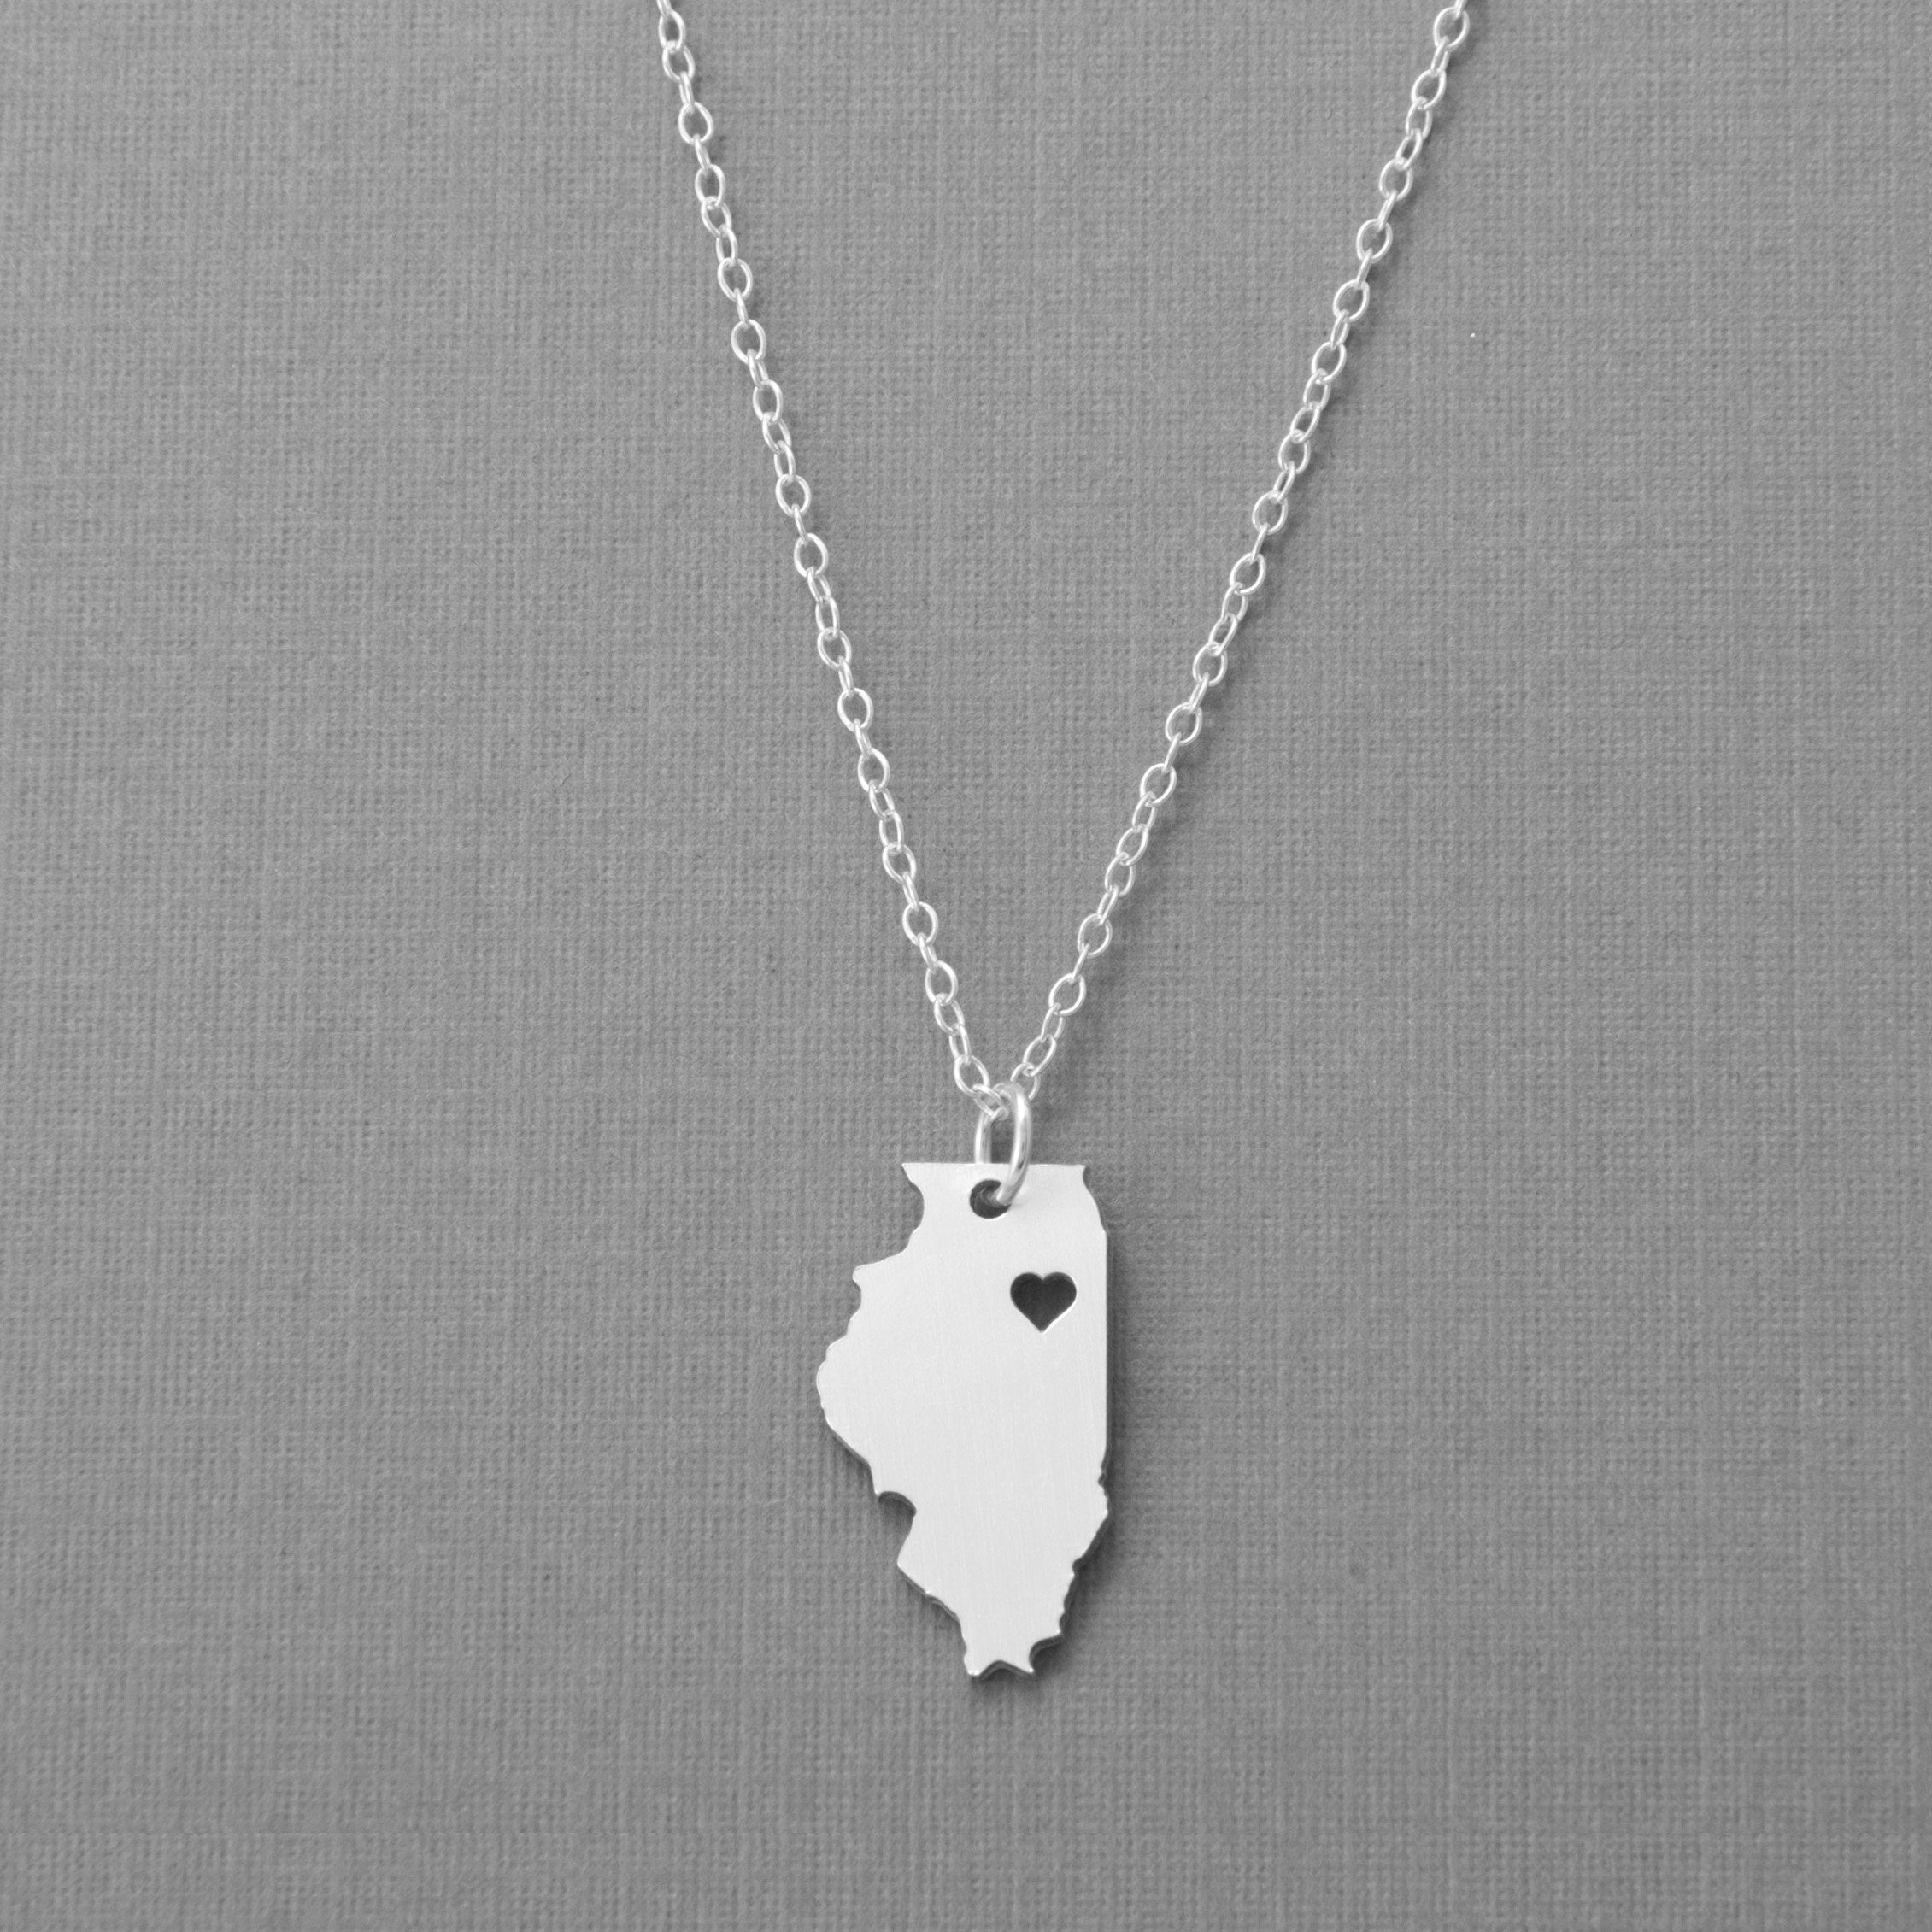 card on stand the sterling from silver necklace pendant out giraffe crowd reads chain charm